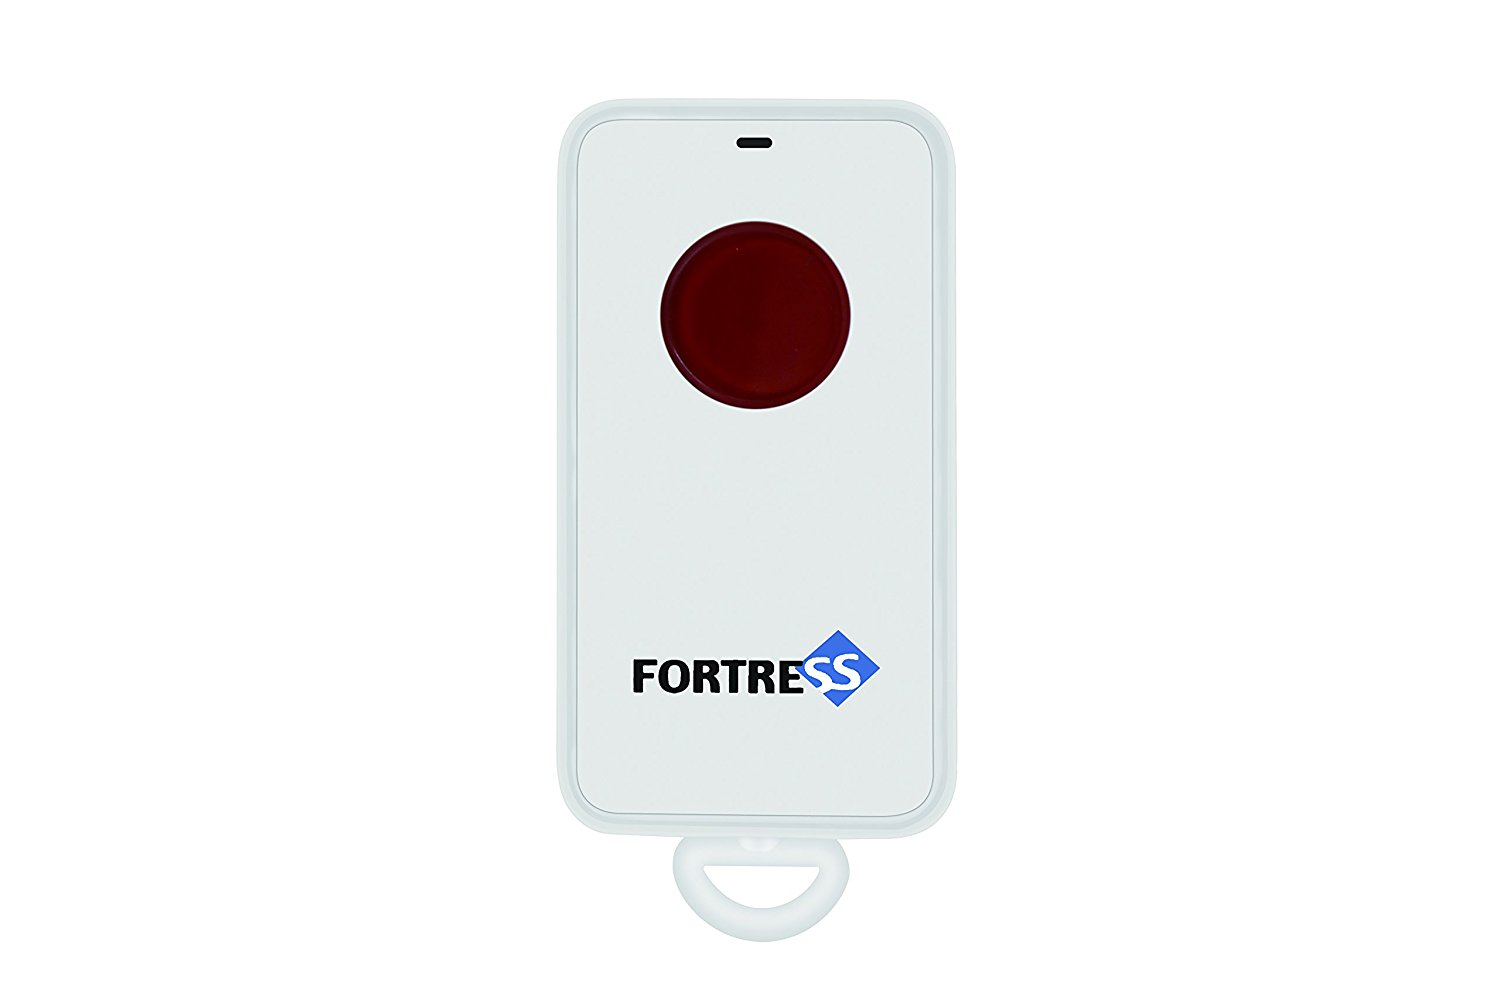 Fortress Doorbell / Panic Button - Compatible with S1, S03, S6, and Stand Alone systems